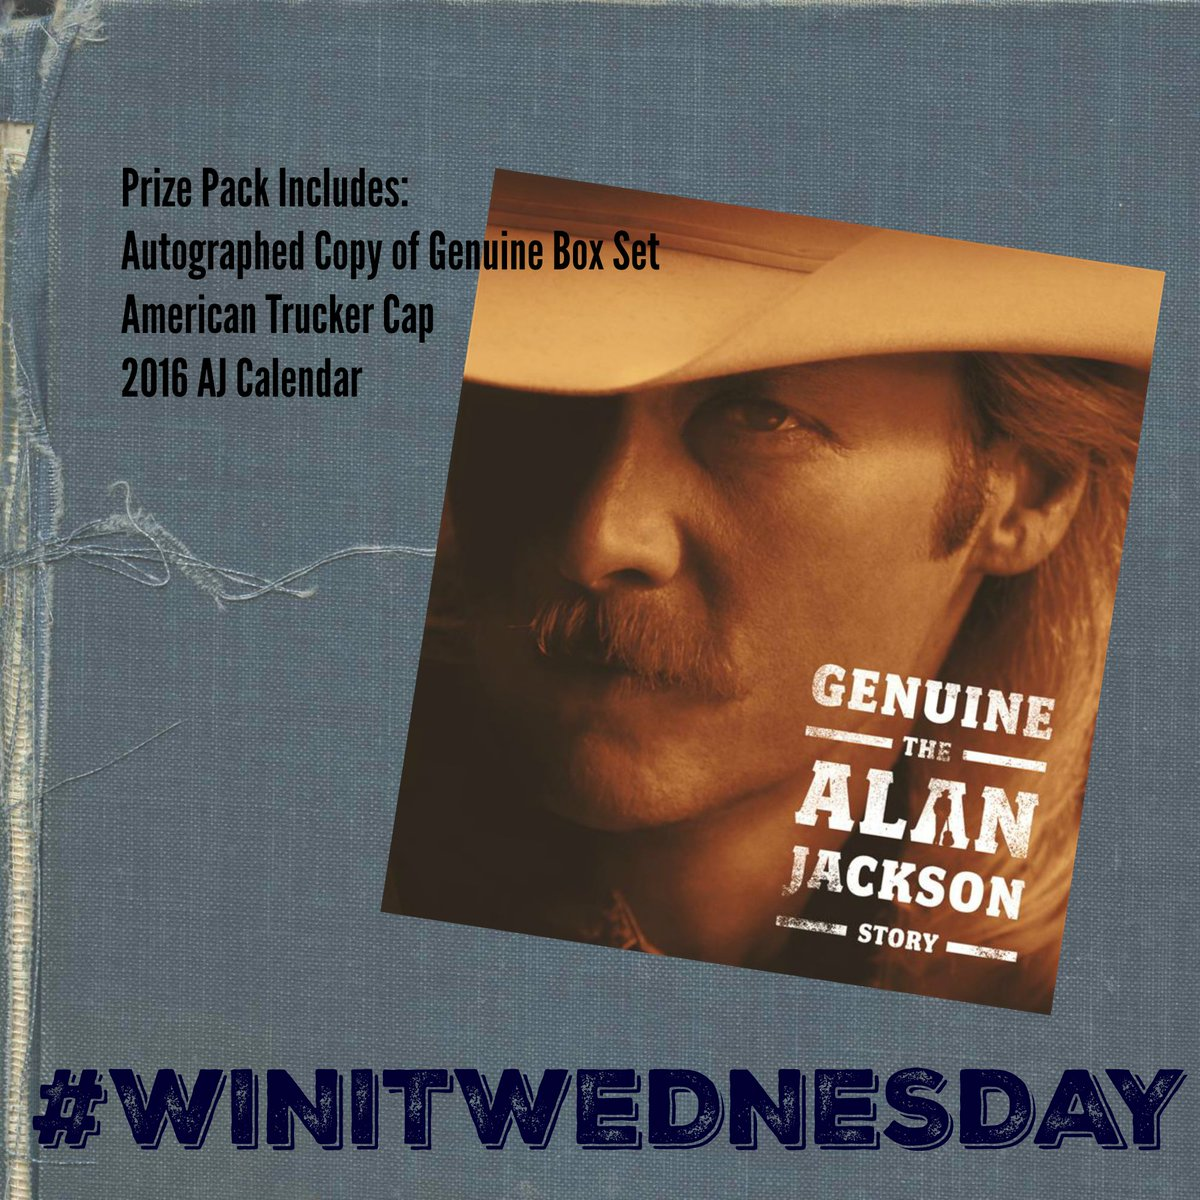 It's #winitwednesday and we've got a nice prize pack for you!! RT for your chance to WIN IT! #GenuineAJ https://t.co/zOtMS3wRwd